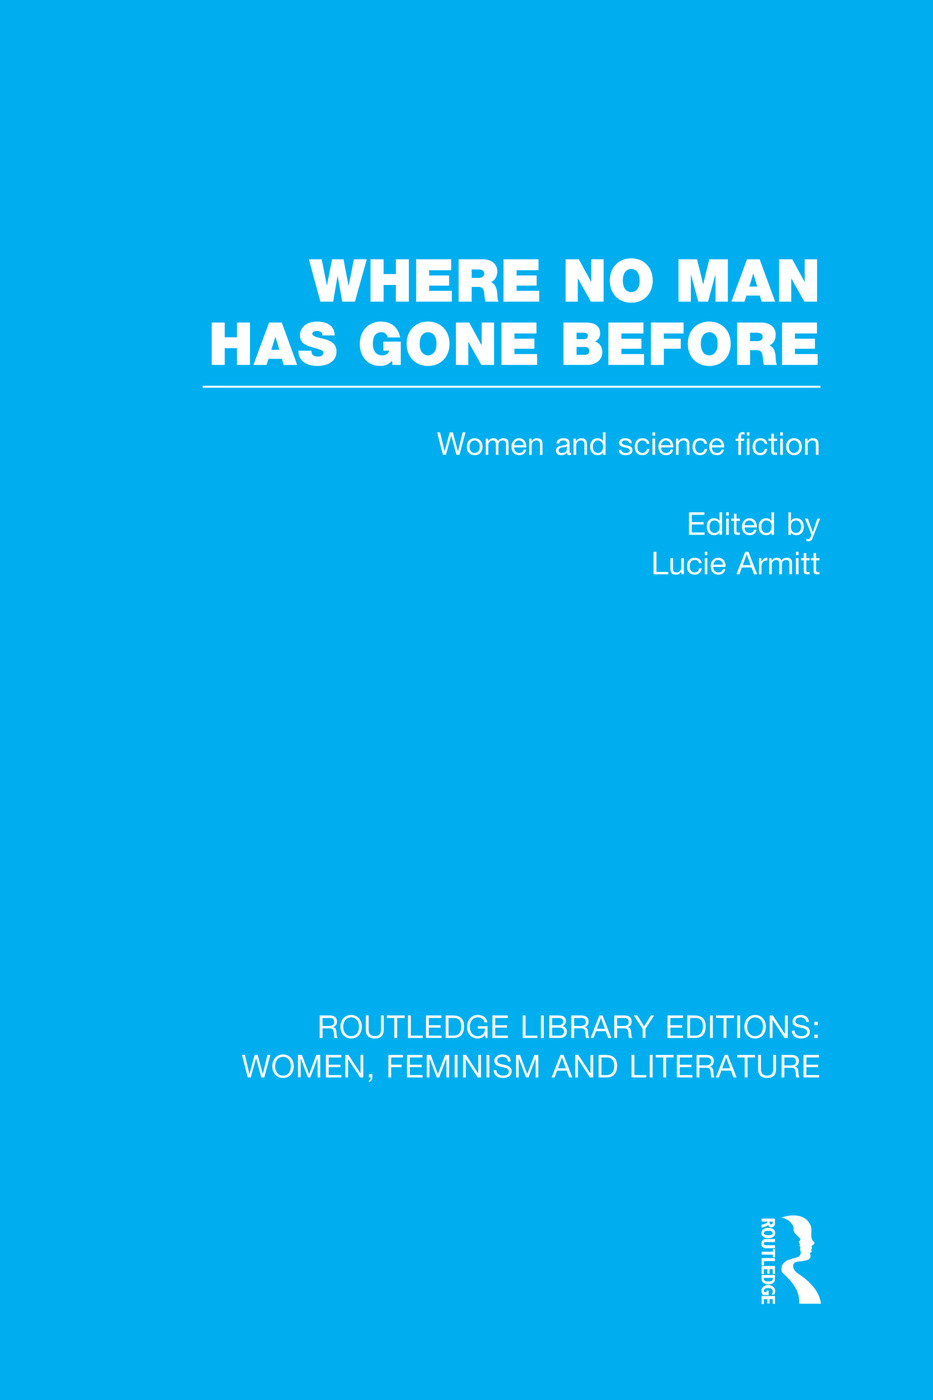 Where No Man has Gone Before: Essays on Women and Science Fiction book cover